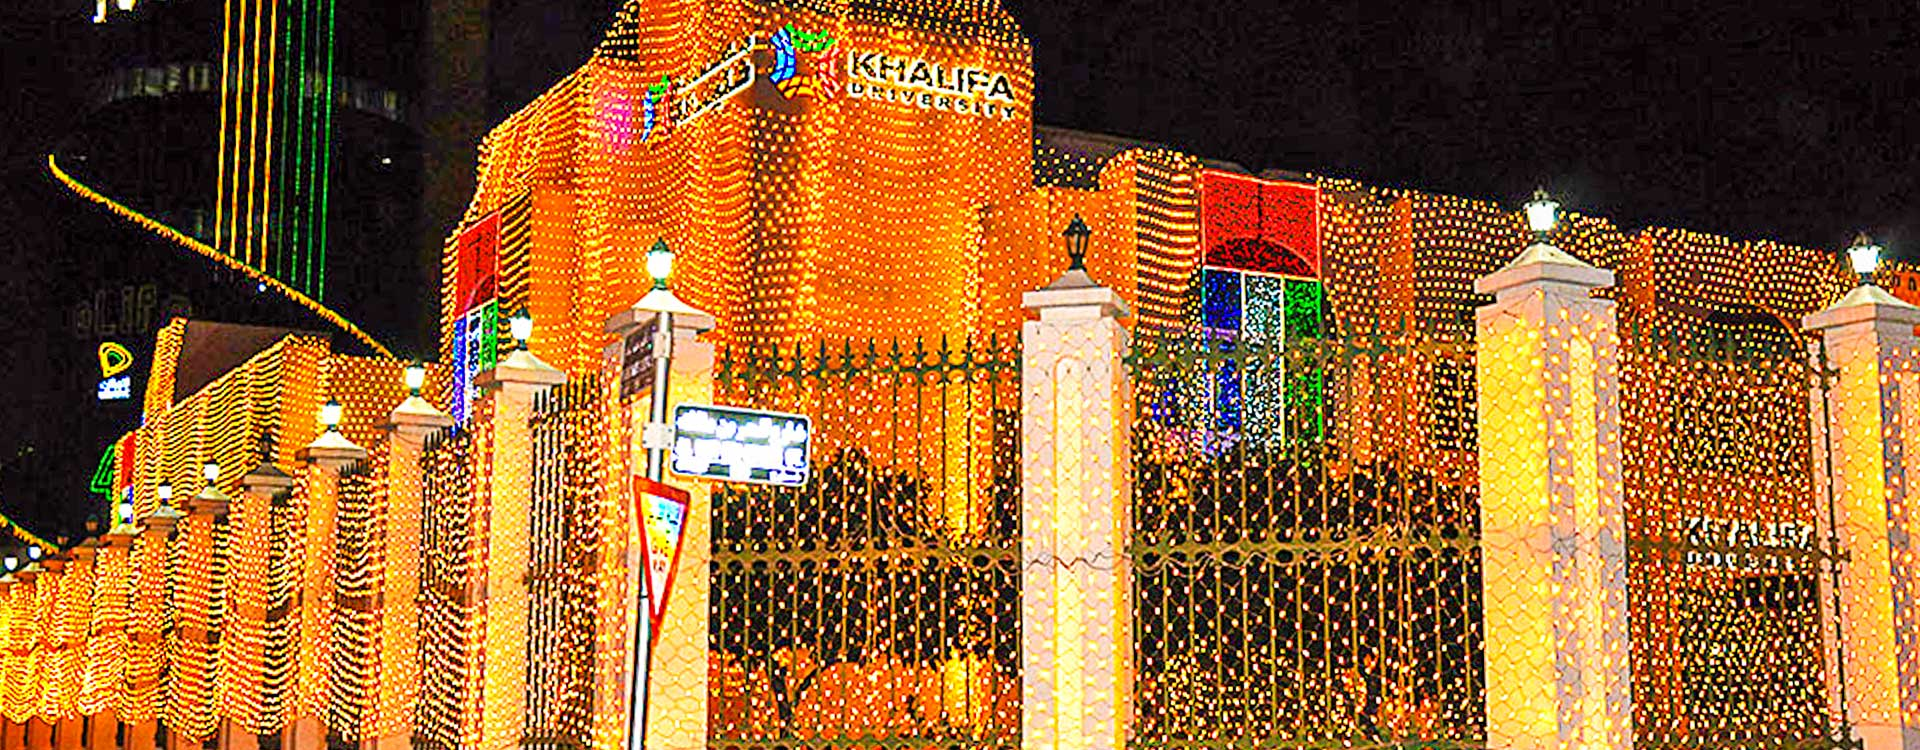 Events Lights, Buy and Rent Lights, Lightning Services, UAE Celebration Lights, Ramdan Lights, Ramzan Lights, Wedding Lights, Sharjah Lights